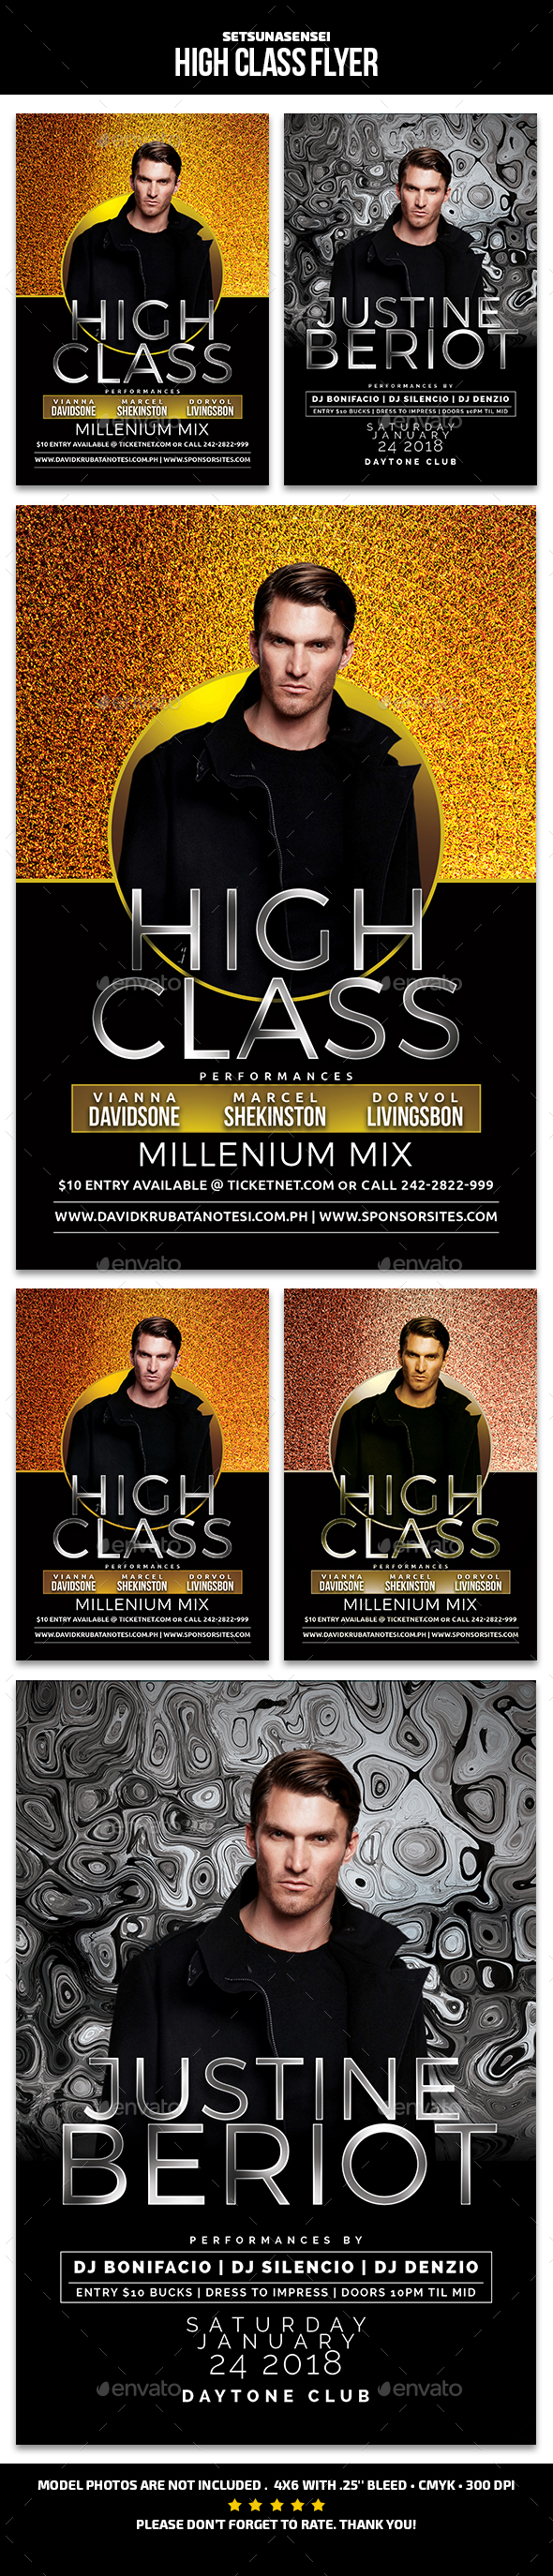 High Class Flyer - Events Flyers